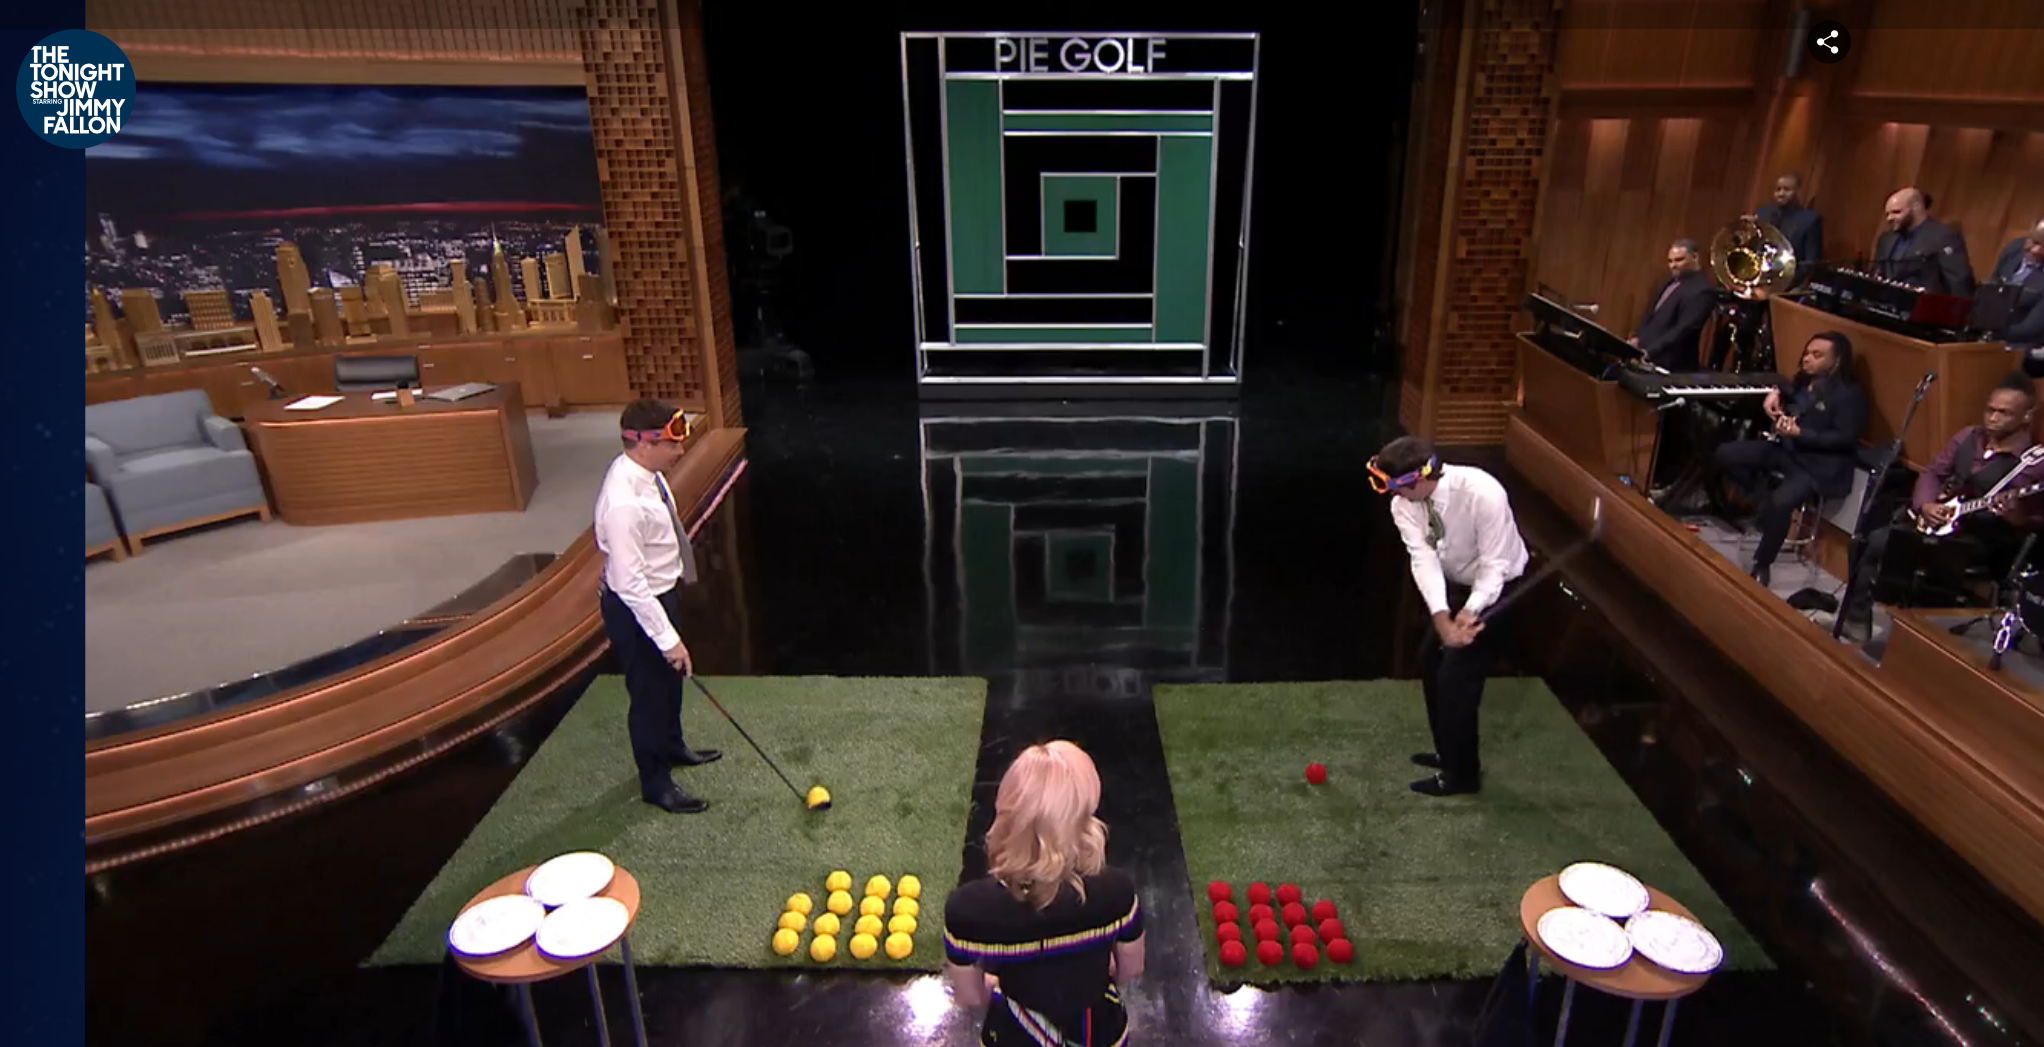 """Jimmy Fallon, January Jones, and Bubba Watson play """"Pie Golf"""" on some SYNLawn on NBC's the Tonight Show starring Jimmy Fallon."""